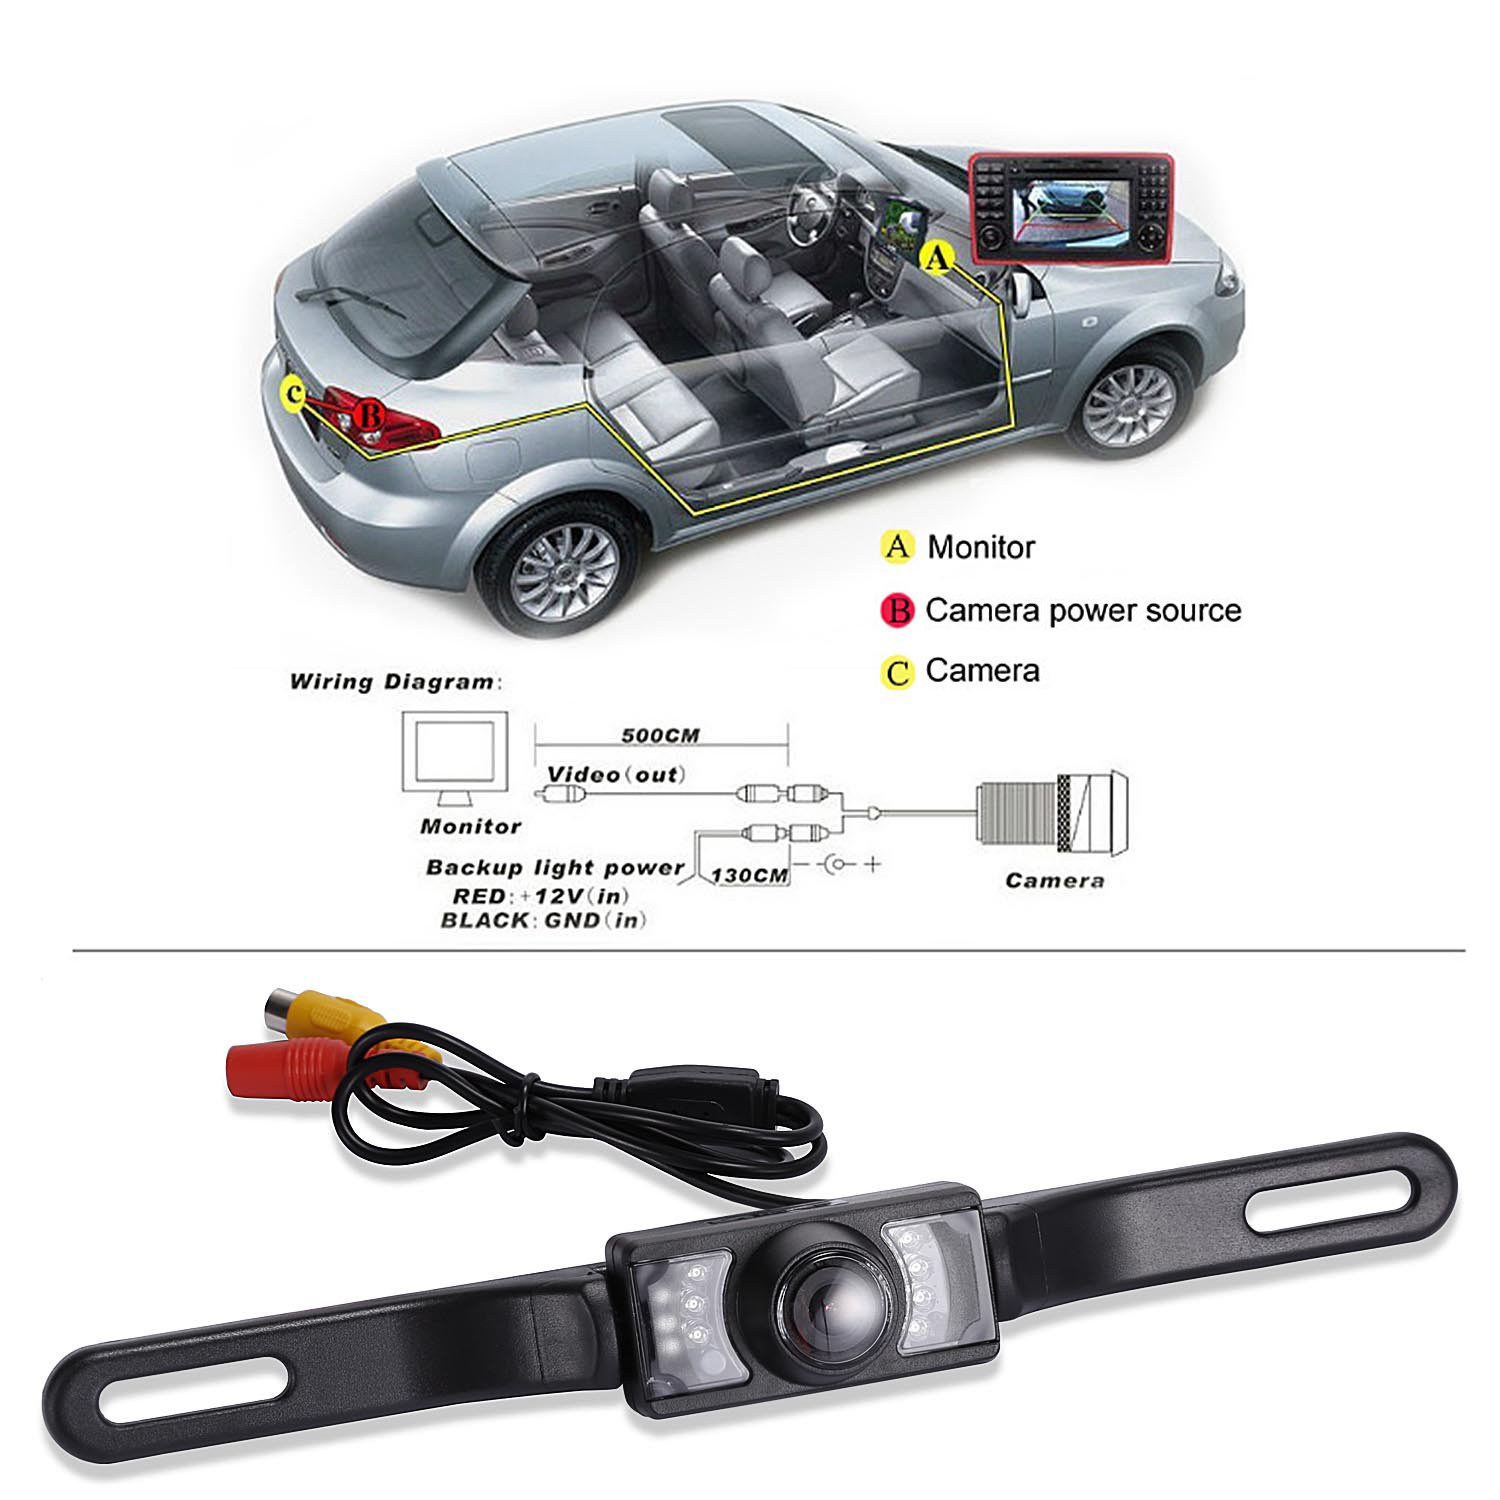 Noiposi Backup Camera And Monitor Kit For Car Universal Back Up Wiring Diagrams Waterproof Night Vision Linsence Plate Rear View 43 Tft Lcd